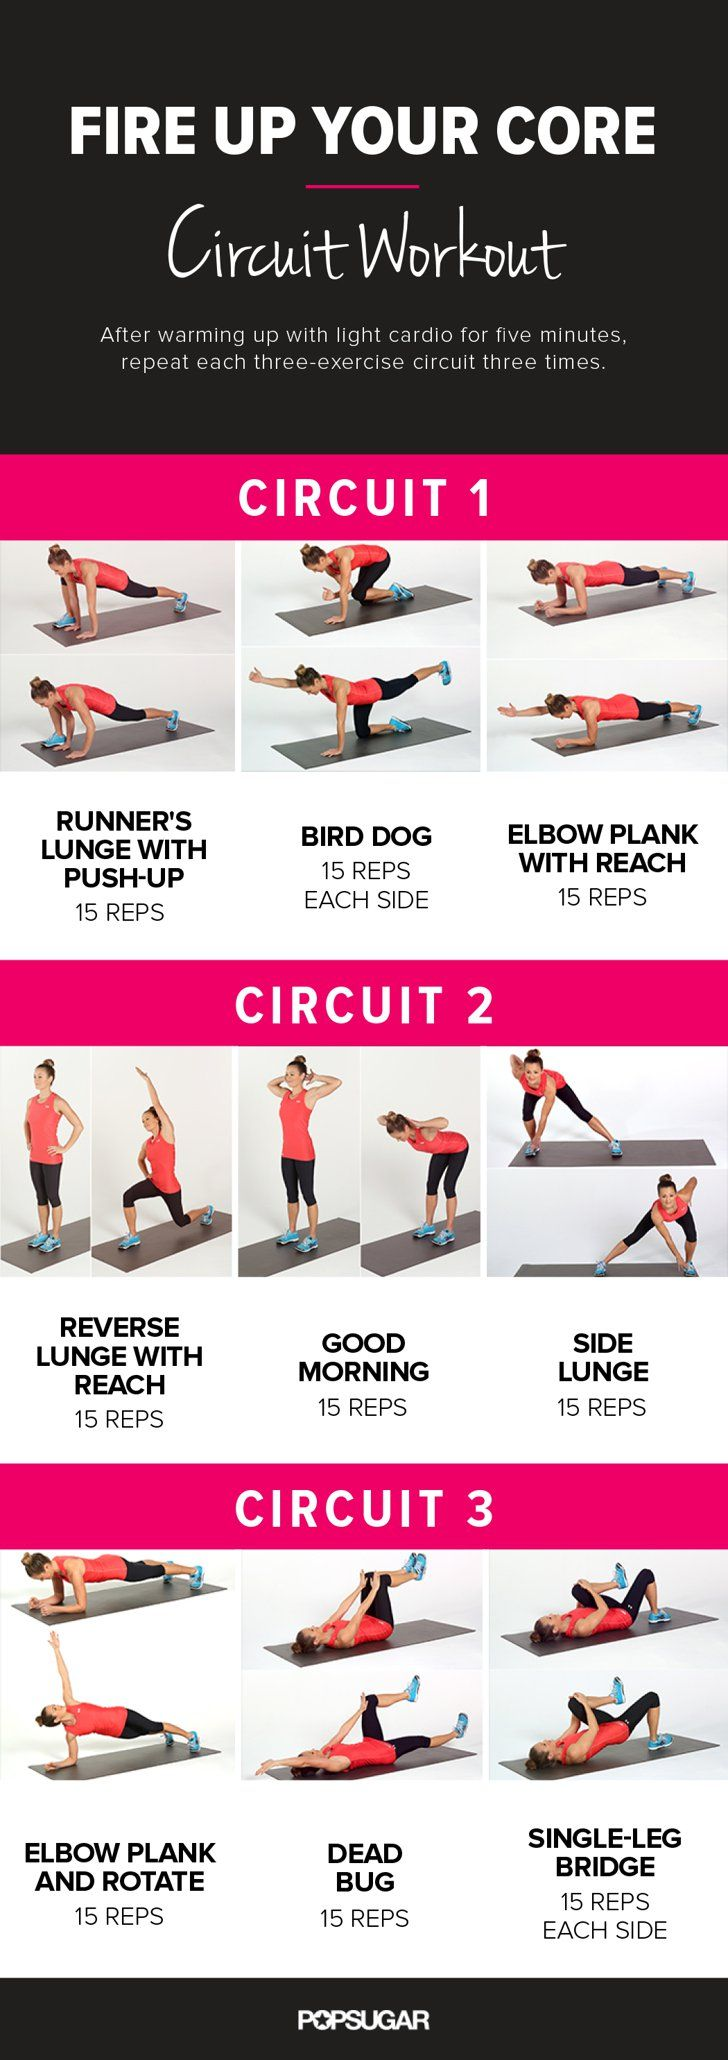 Fire Up Your Core Circuit Workout. East at-home core workout with no equipment necessary!